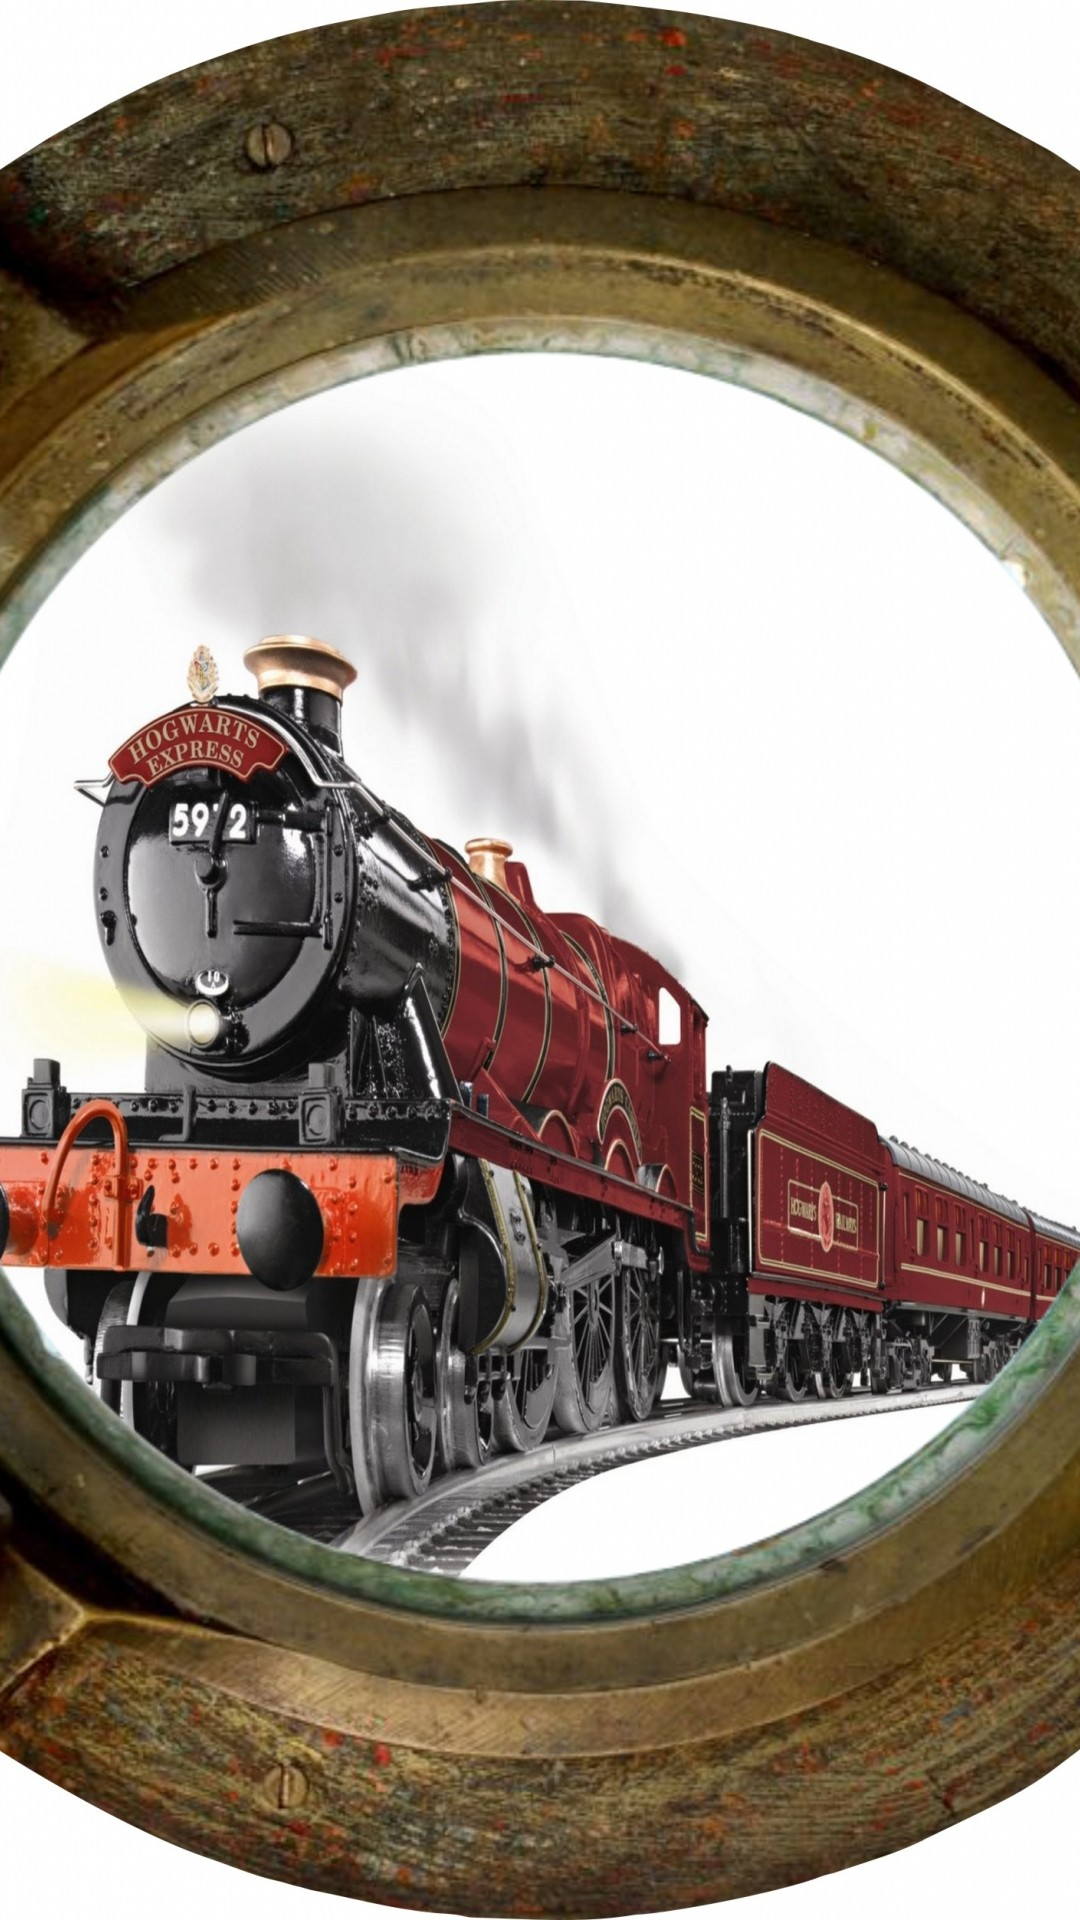 Res: 1080x1920, Hogwarts Express Wallpaper